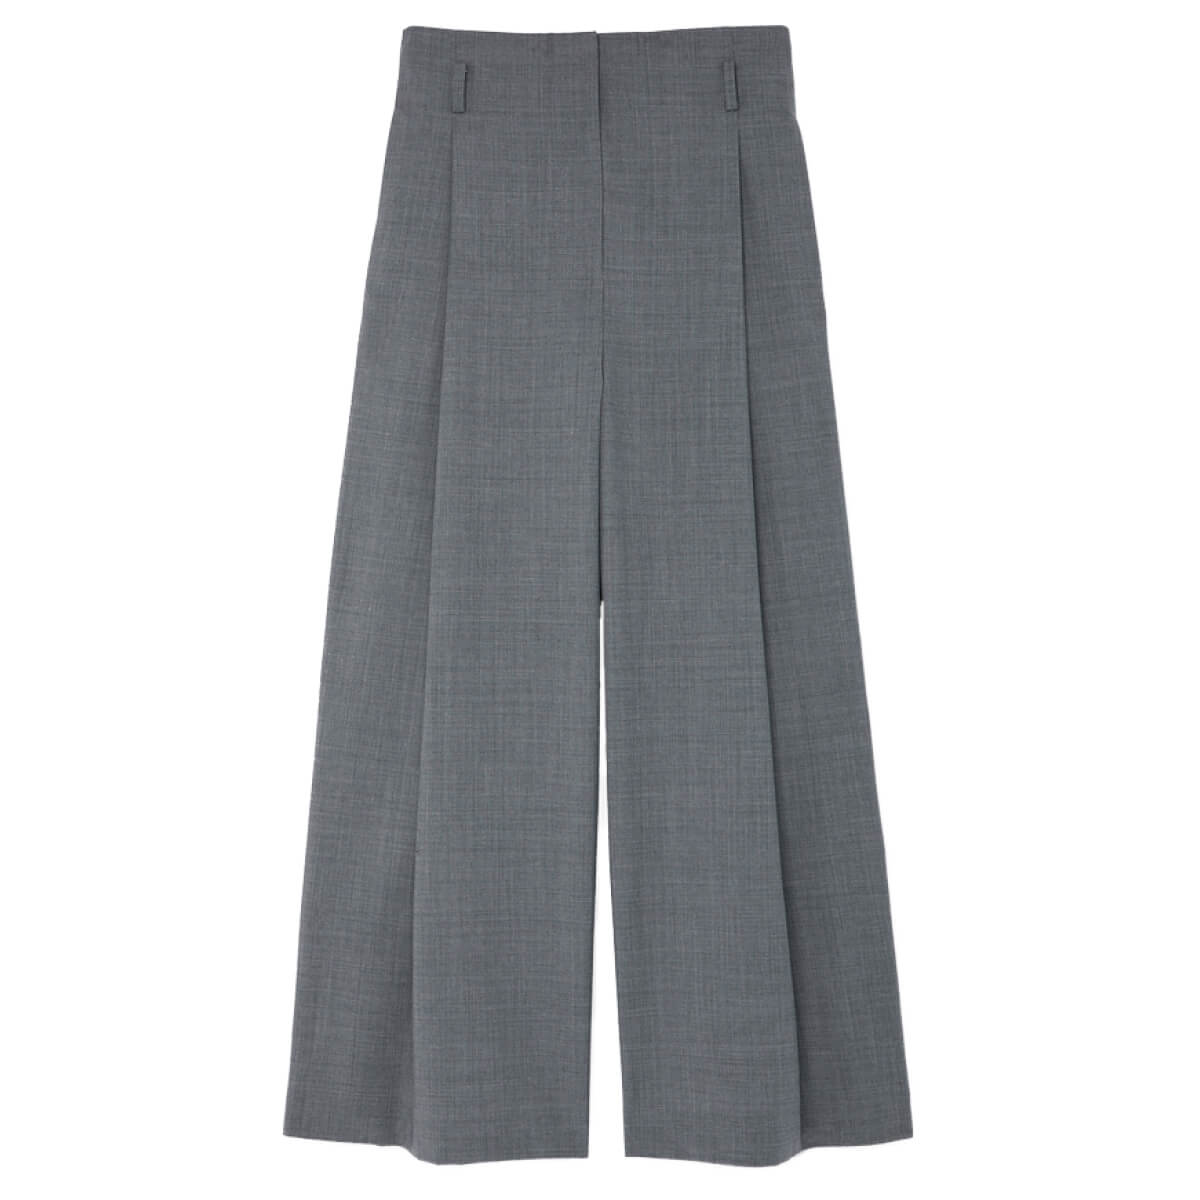 G. Label VASQUEZ HIGH-WAISTED PLEATED CULOTTES